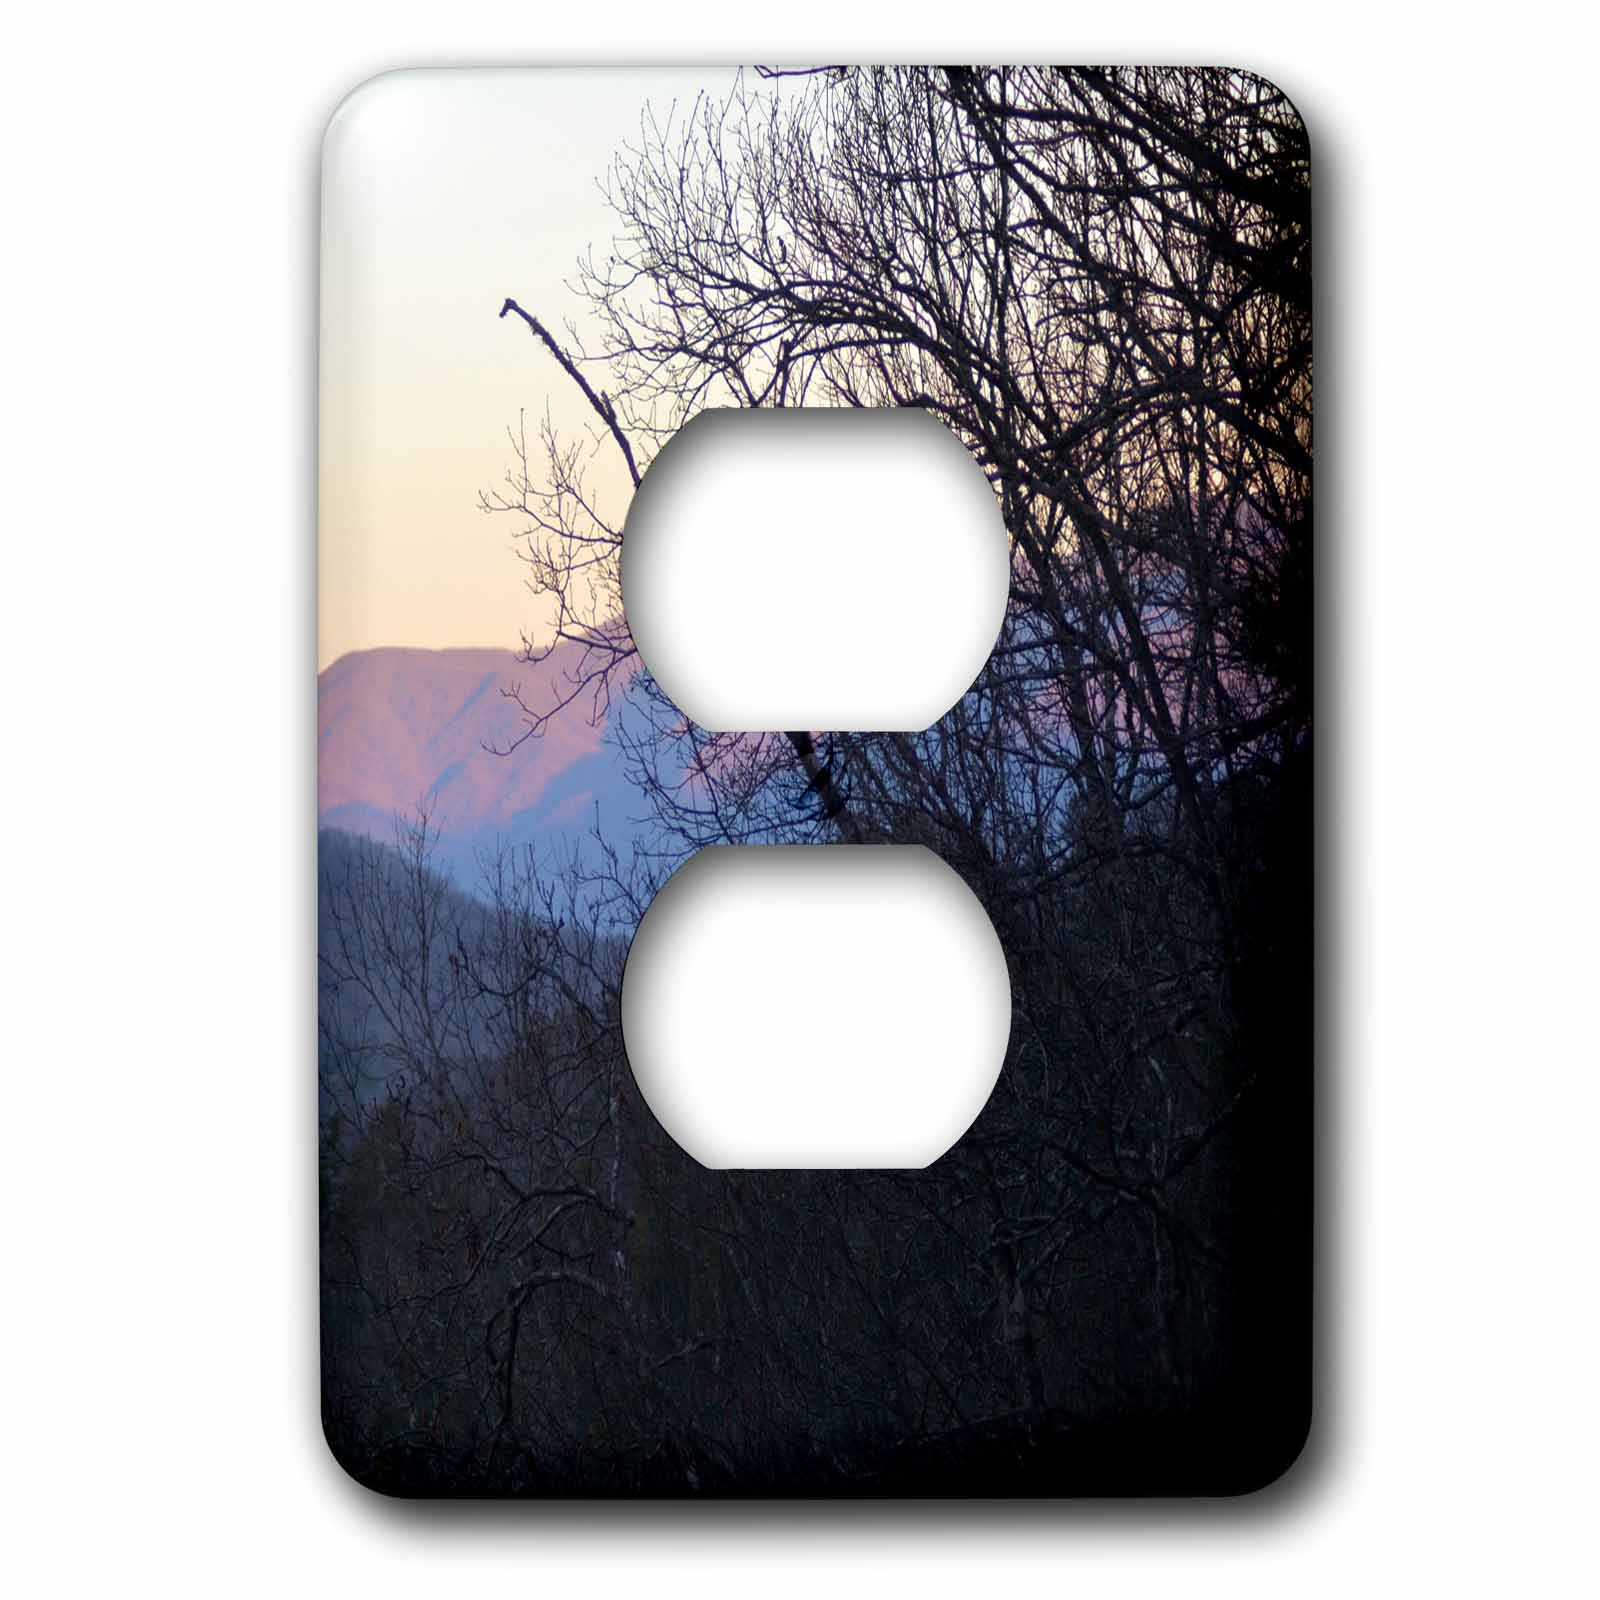 3dRose WhiteOaks Photography and Artwork - Mountains - North Carolina Mountains is a photo of early morning in the mountains - Light Switch Covers - 2 plug outlet cover (lsp_265358_6)